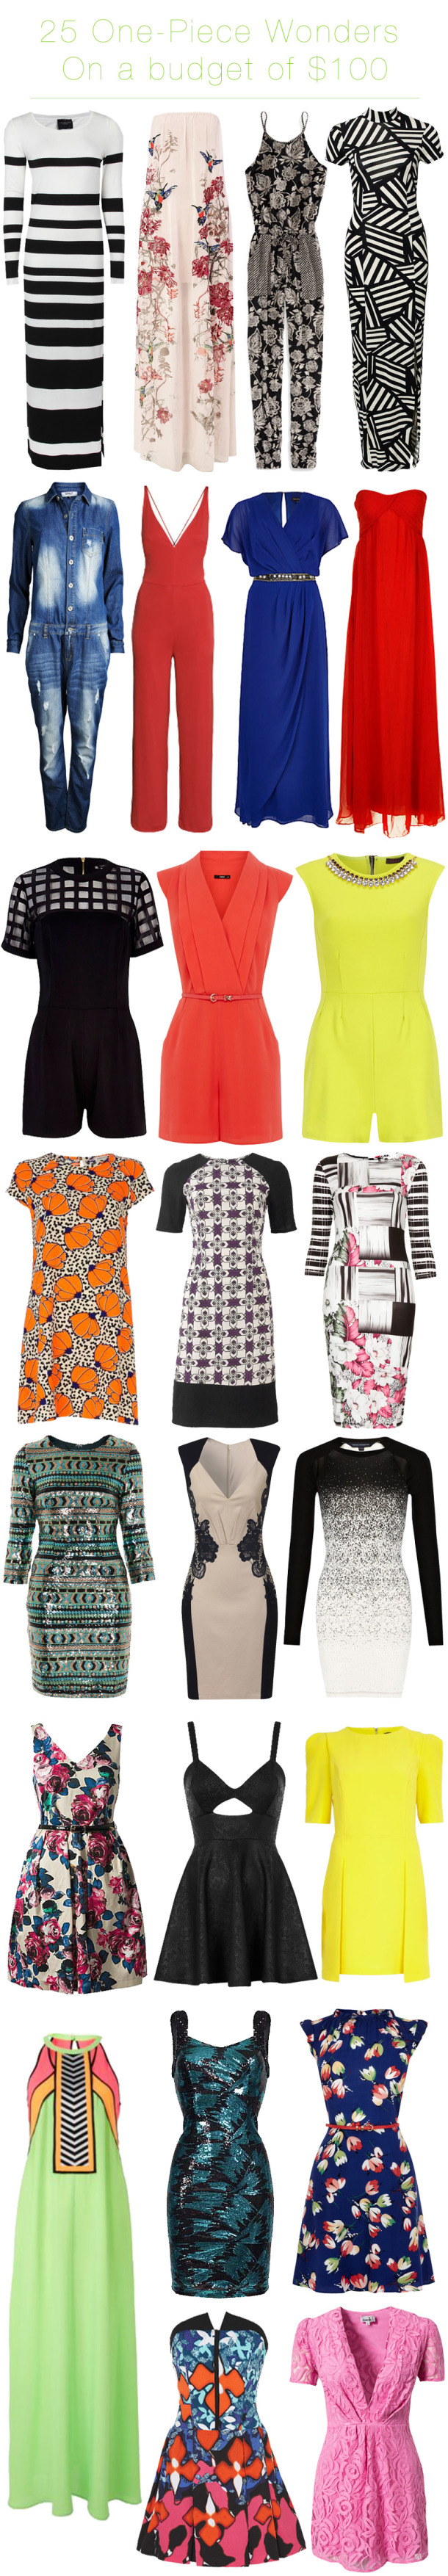 one piece wonders - statement dresses, maxi, gowns, overalls, jumpsuit and rompers all on a budget under $100